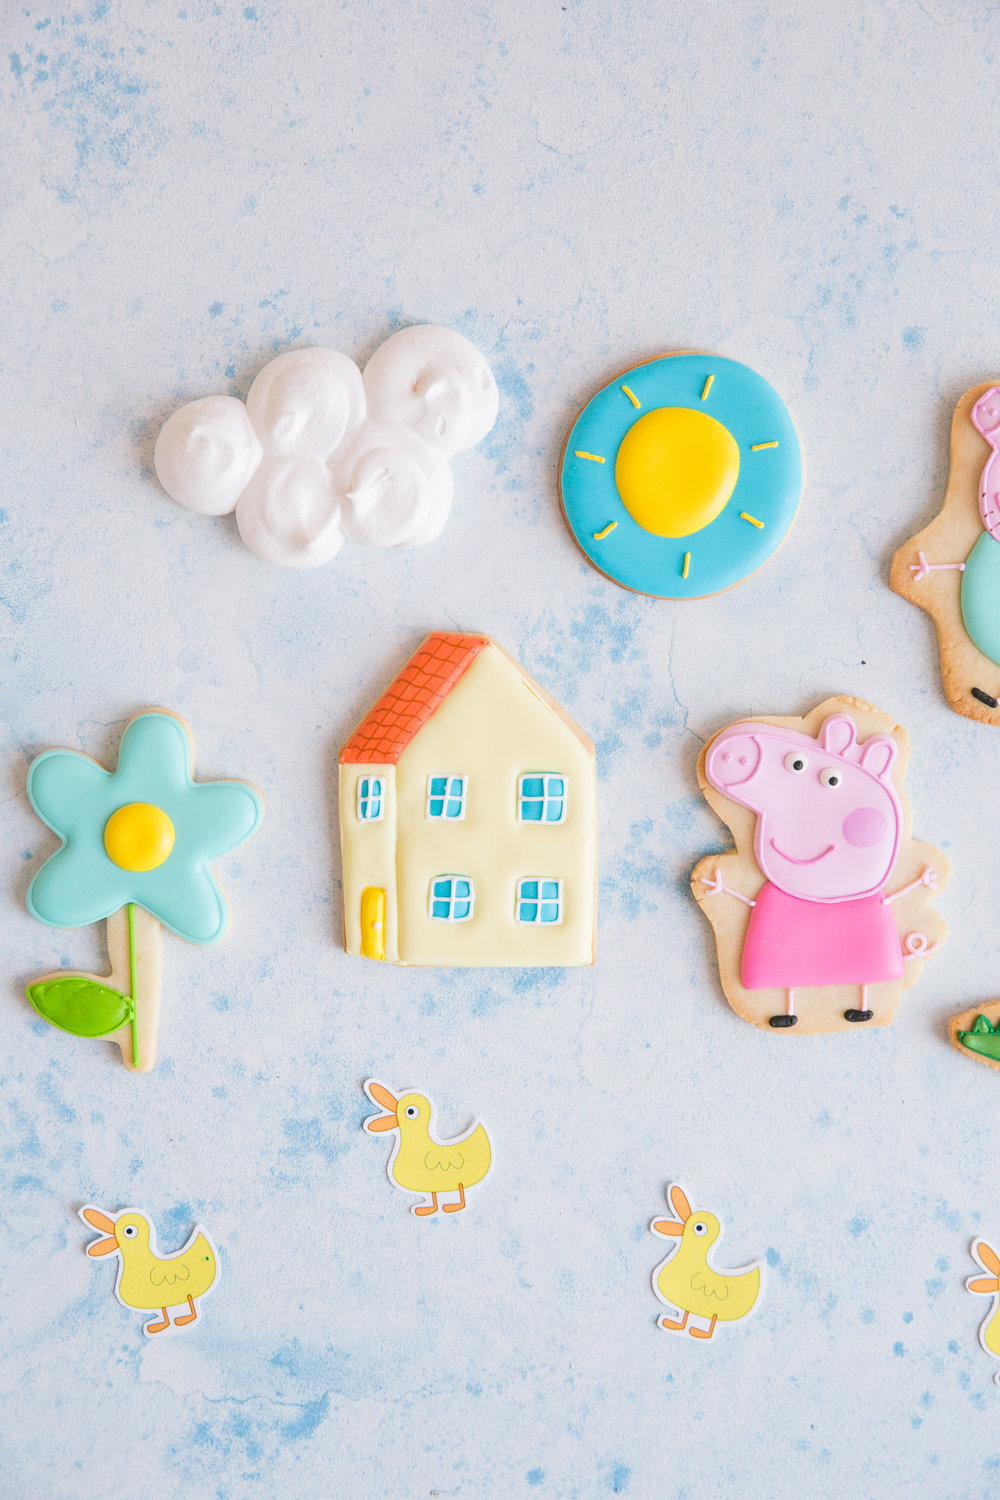 Oui Party - Peppa Pig Party - Peppa Pig Cookies 2.jpg